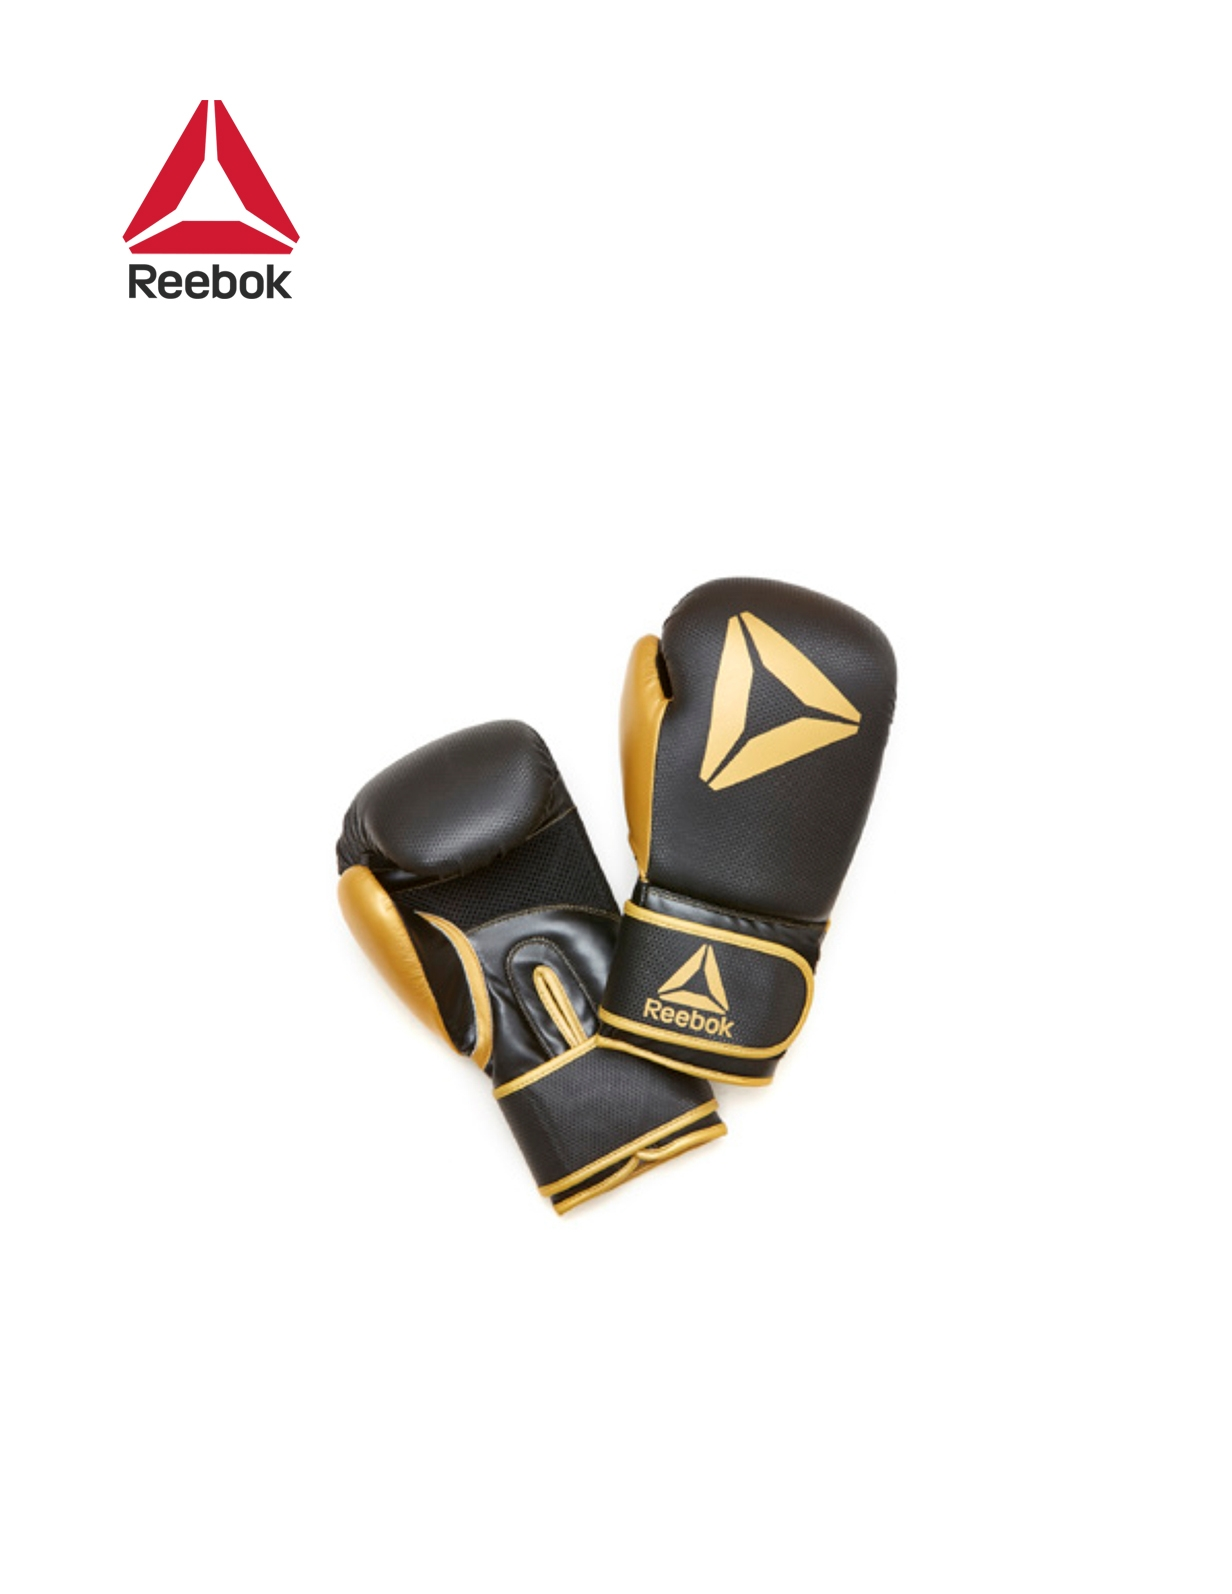 RETAIL BOXING GLOVES- GOLD / BLACK